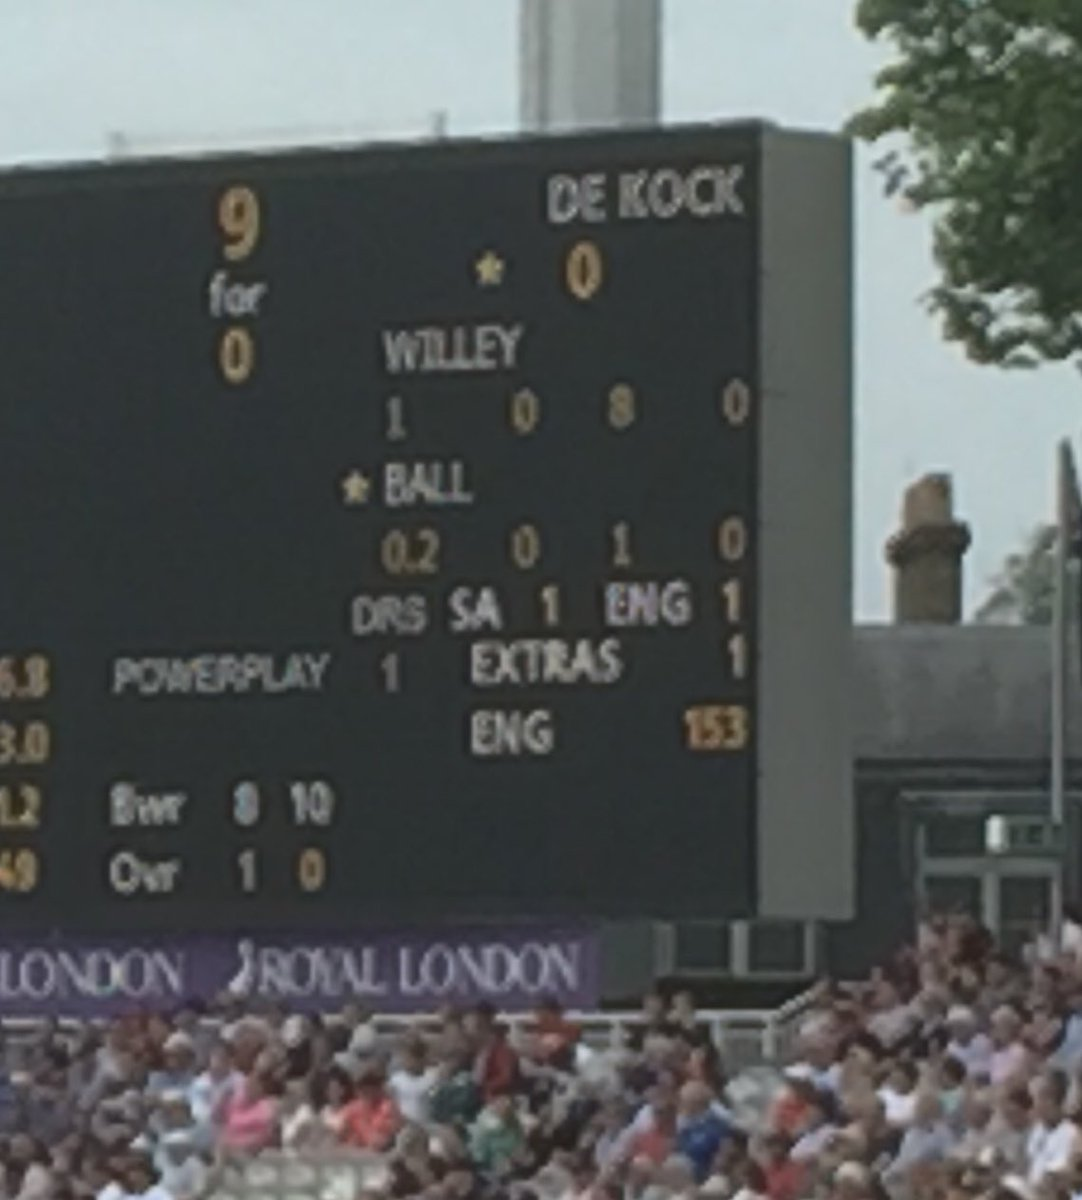 Proud to be at Lords for this historic event: Willey & Ball bowling at De Cock. https://t.co/AsO1mUAJb5